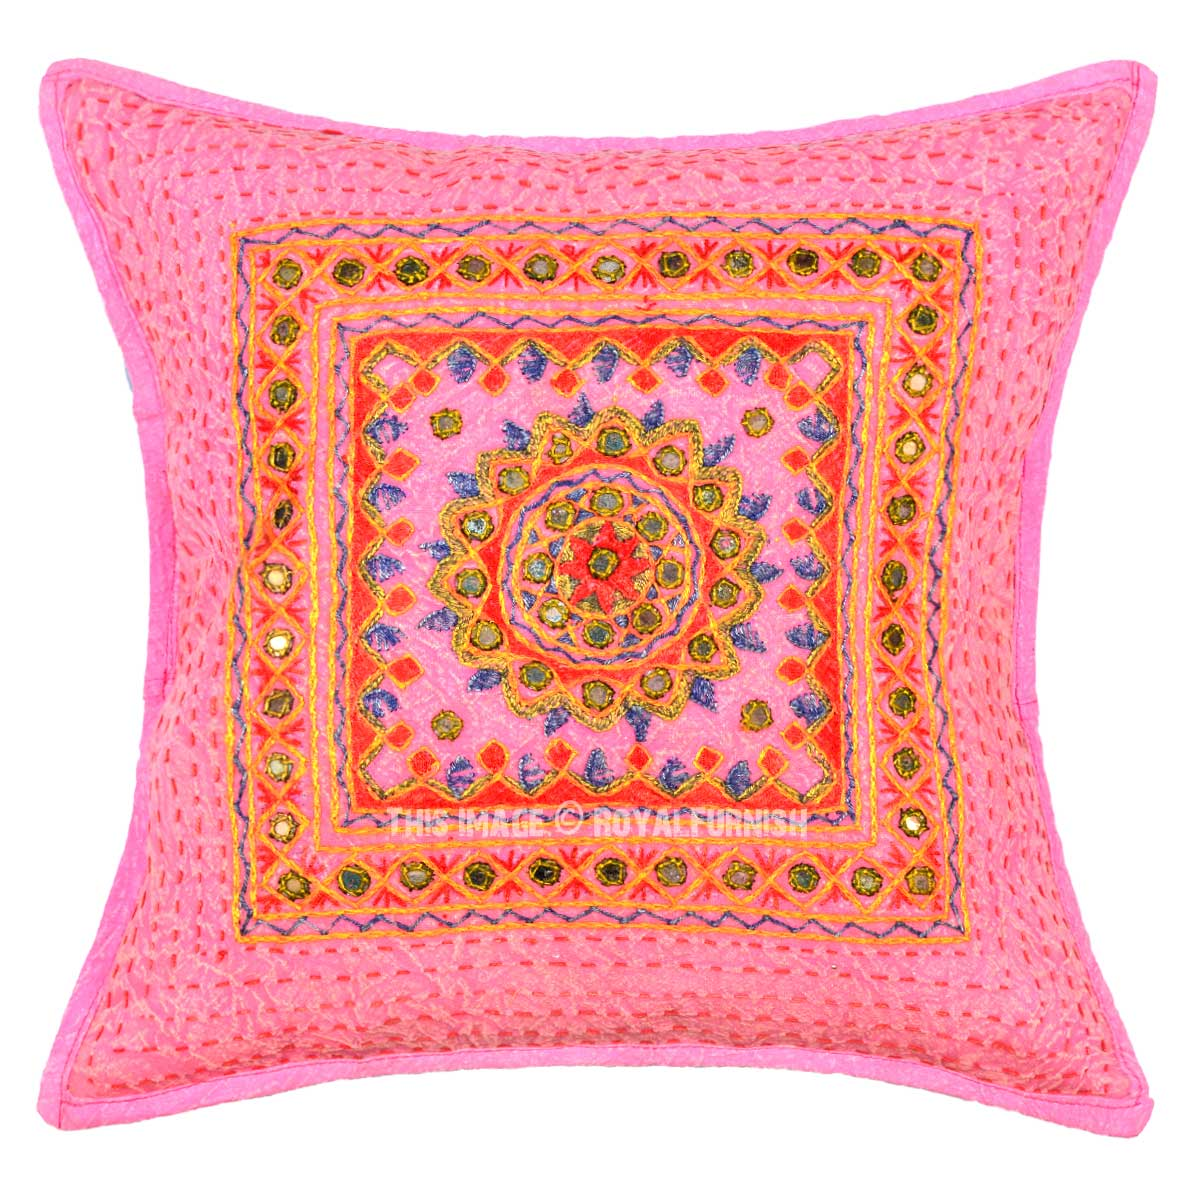 16x16 Decorative Pillow Covers : Pink Multi Kantha and Mirror Ethnic Work Decorative Throw Pillow Cover 16X16 - RoyalFurnish.com